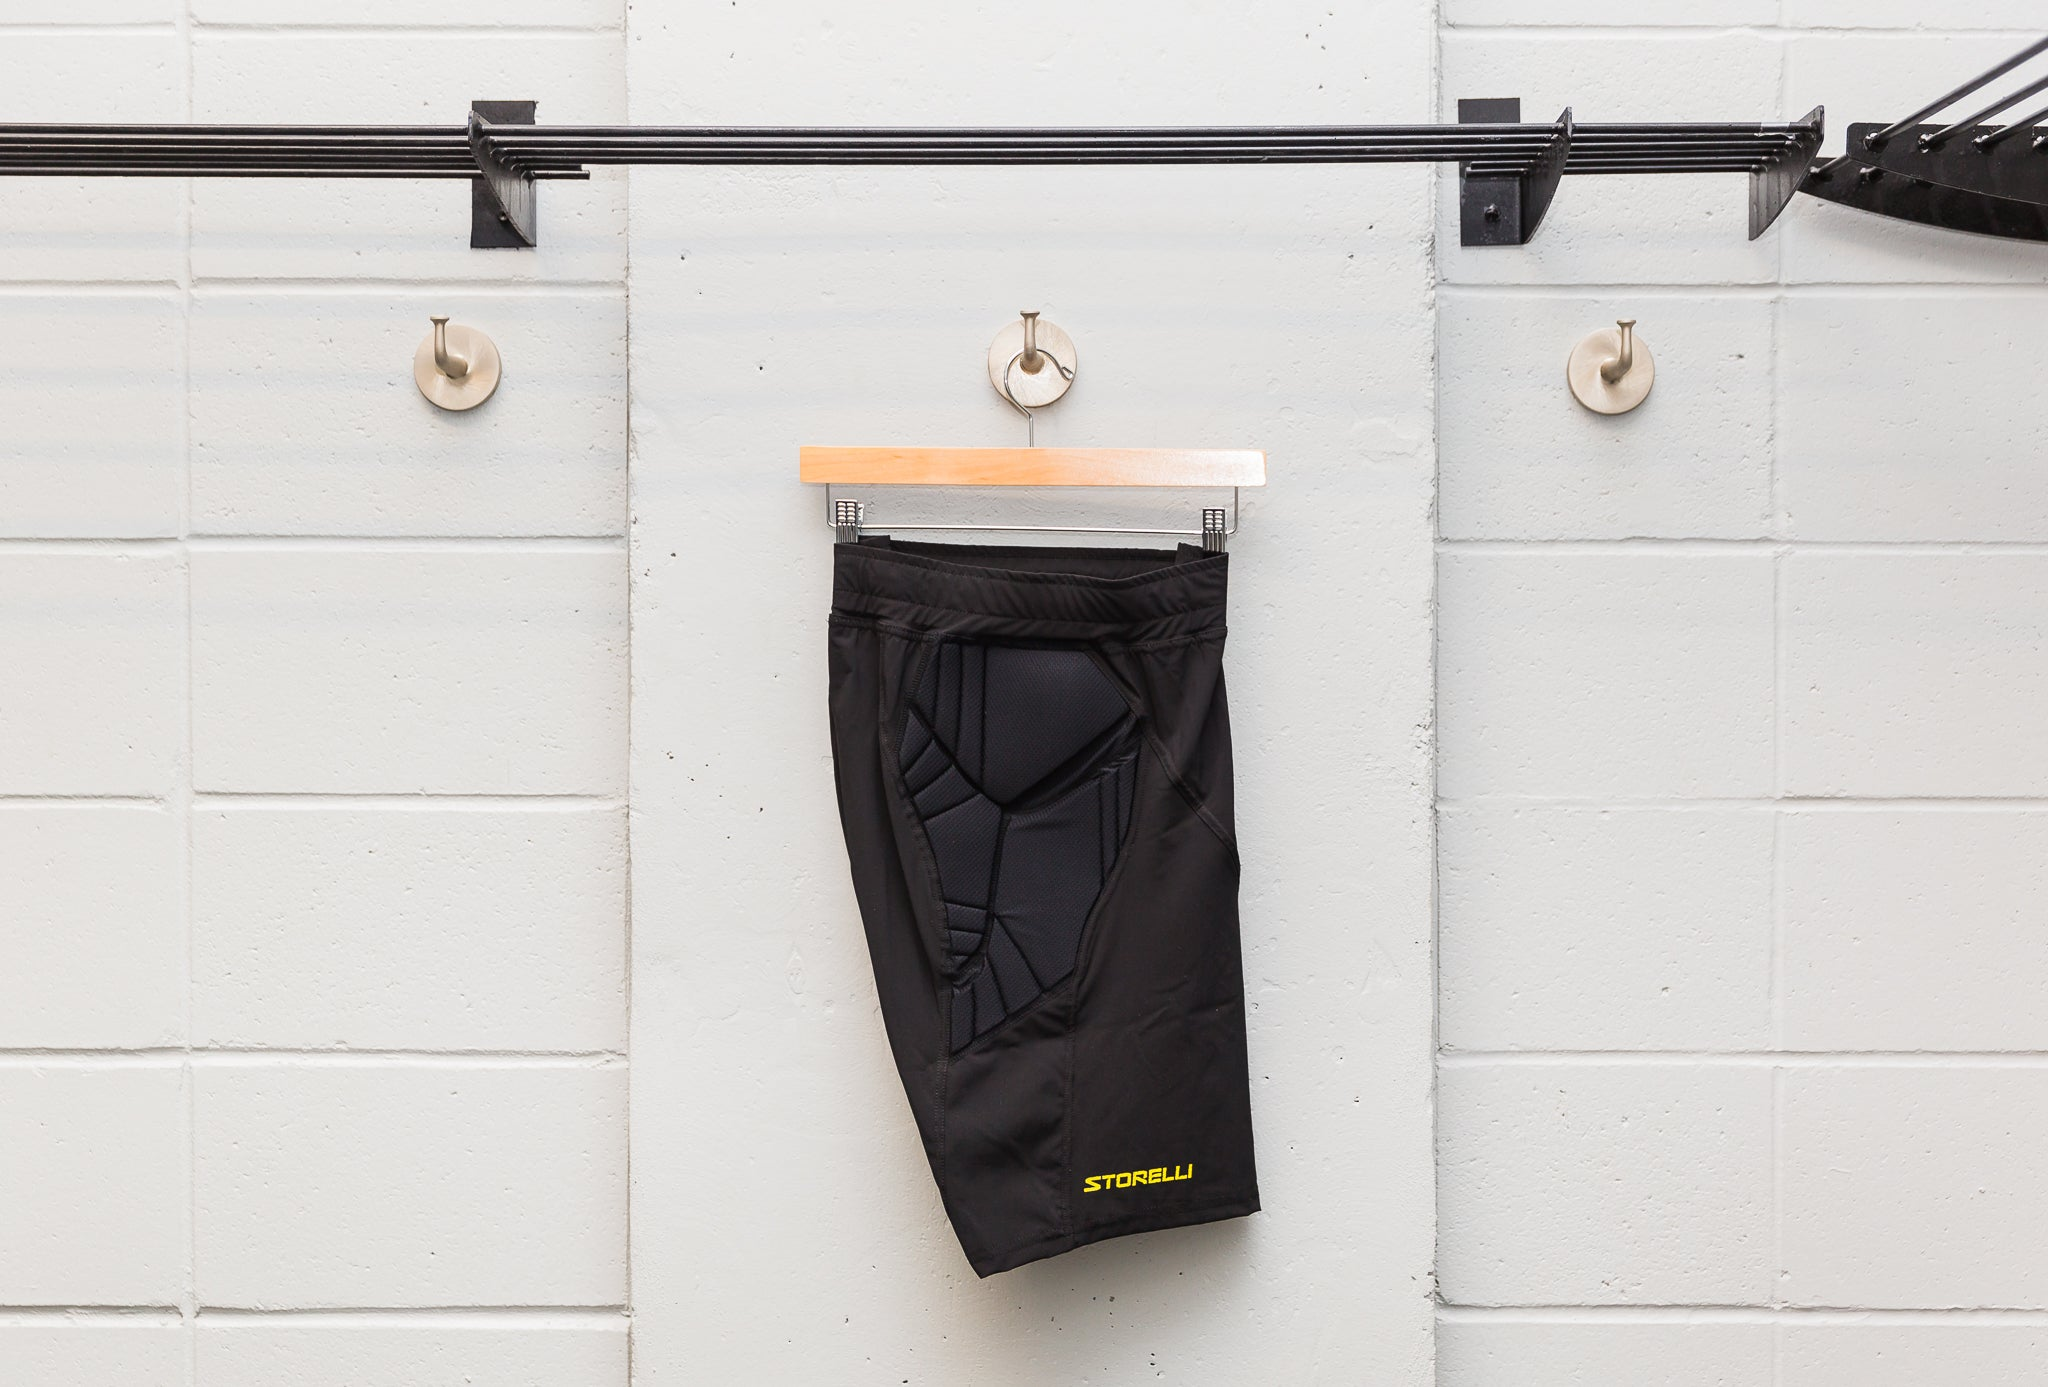 storelli sports bodyshield goalkeeper shorts hanging from hangar in locker room